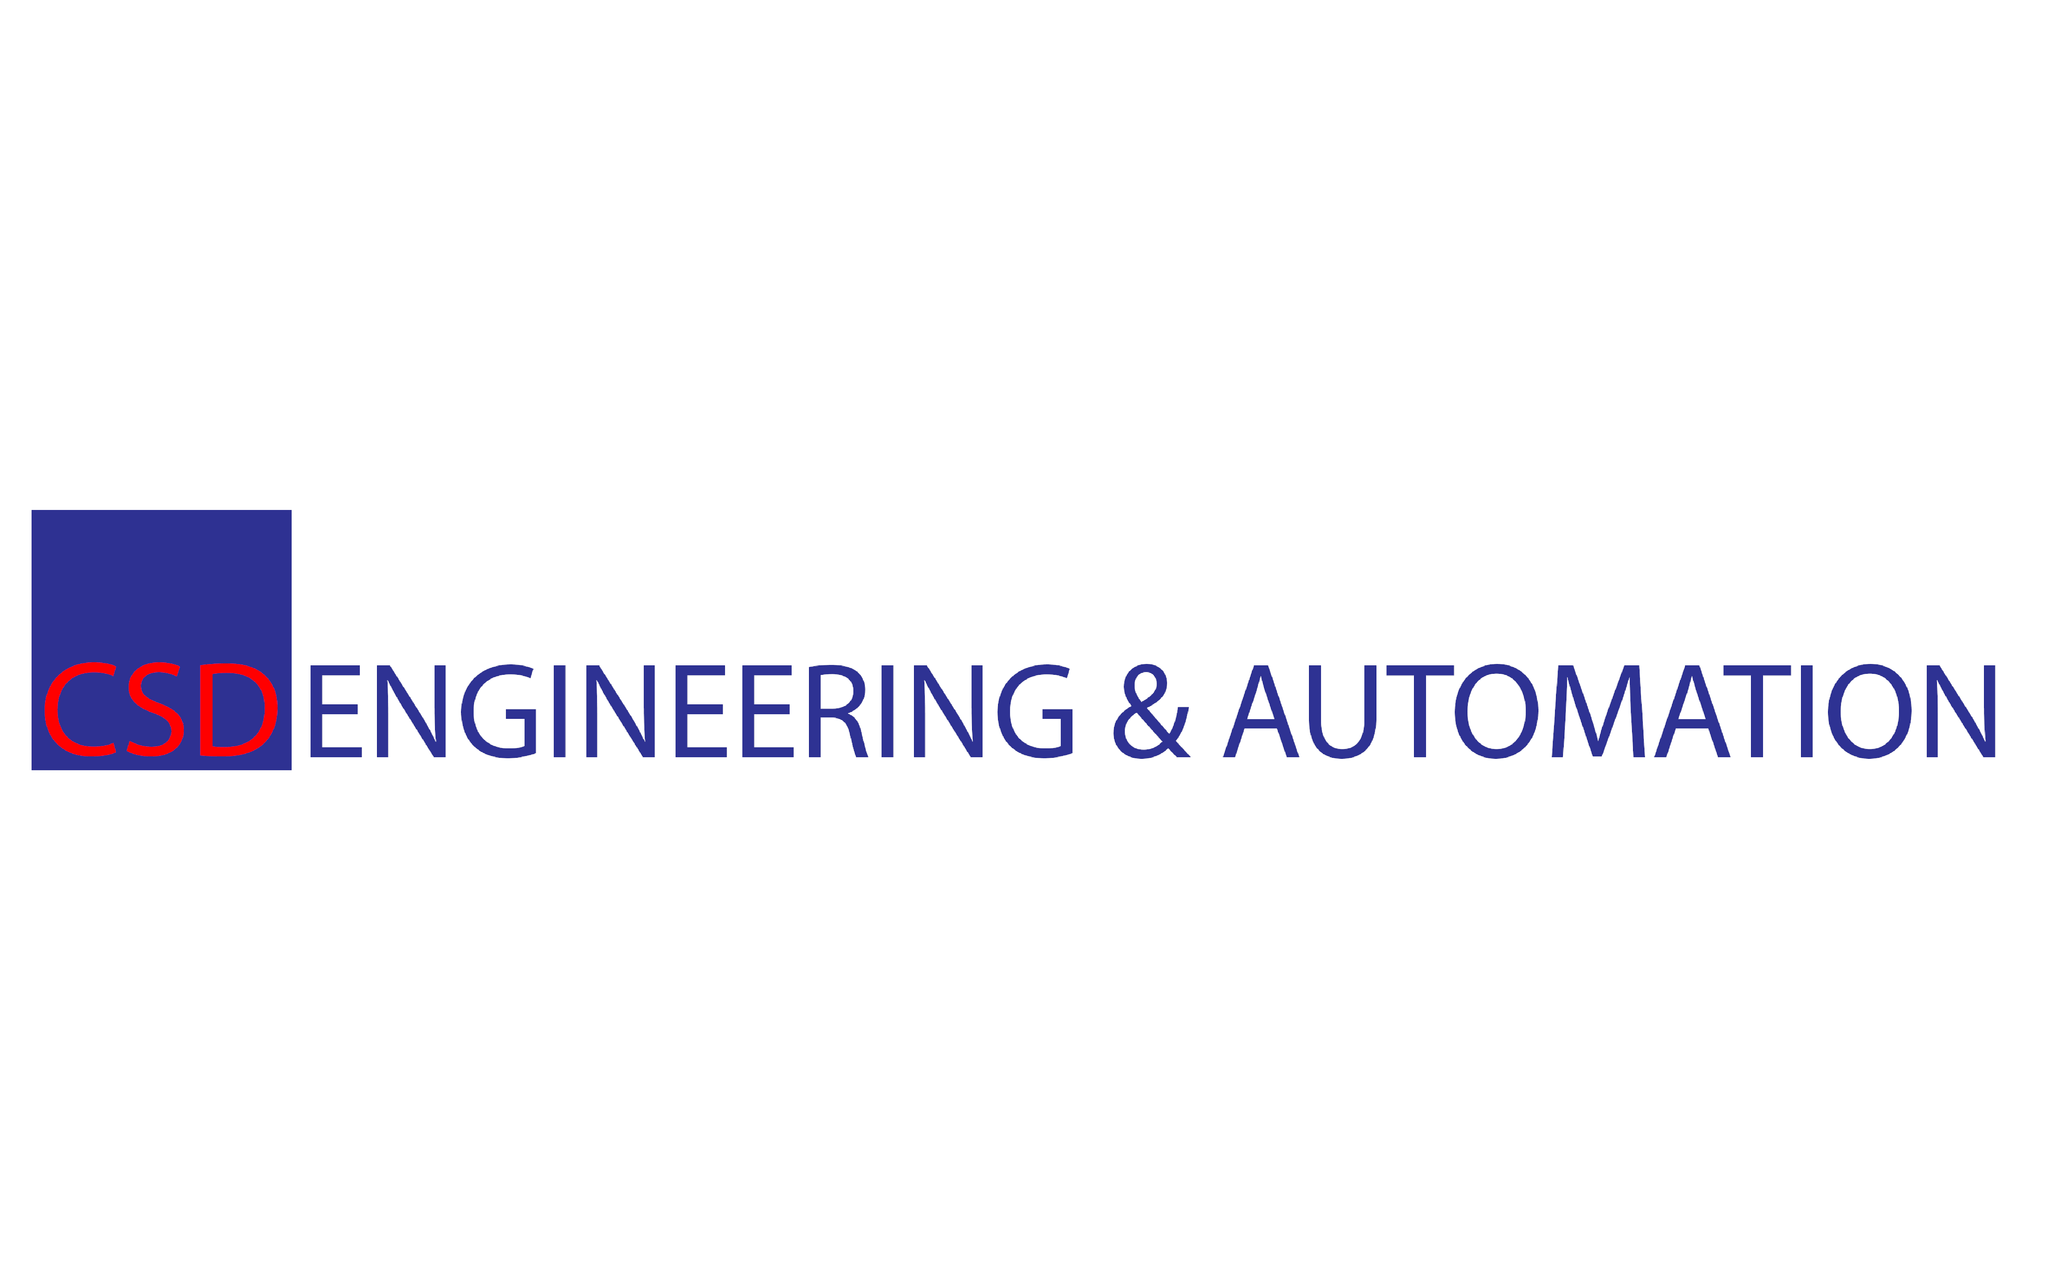 CSD ENGINEERING AND AUTOMATION